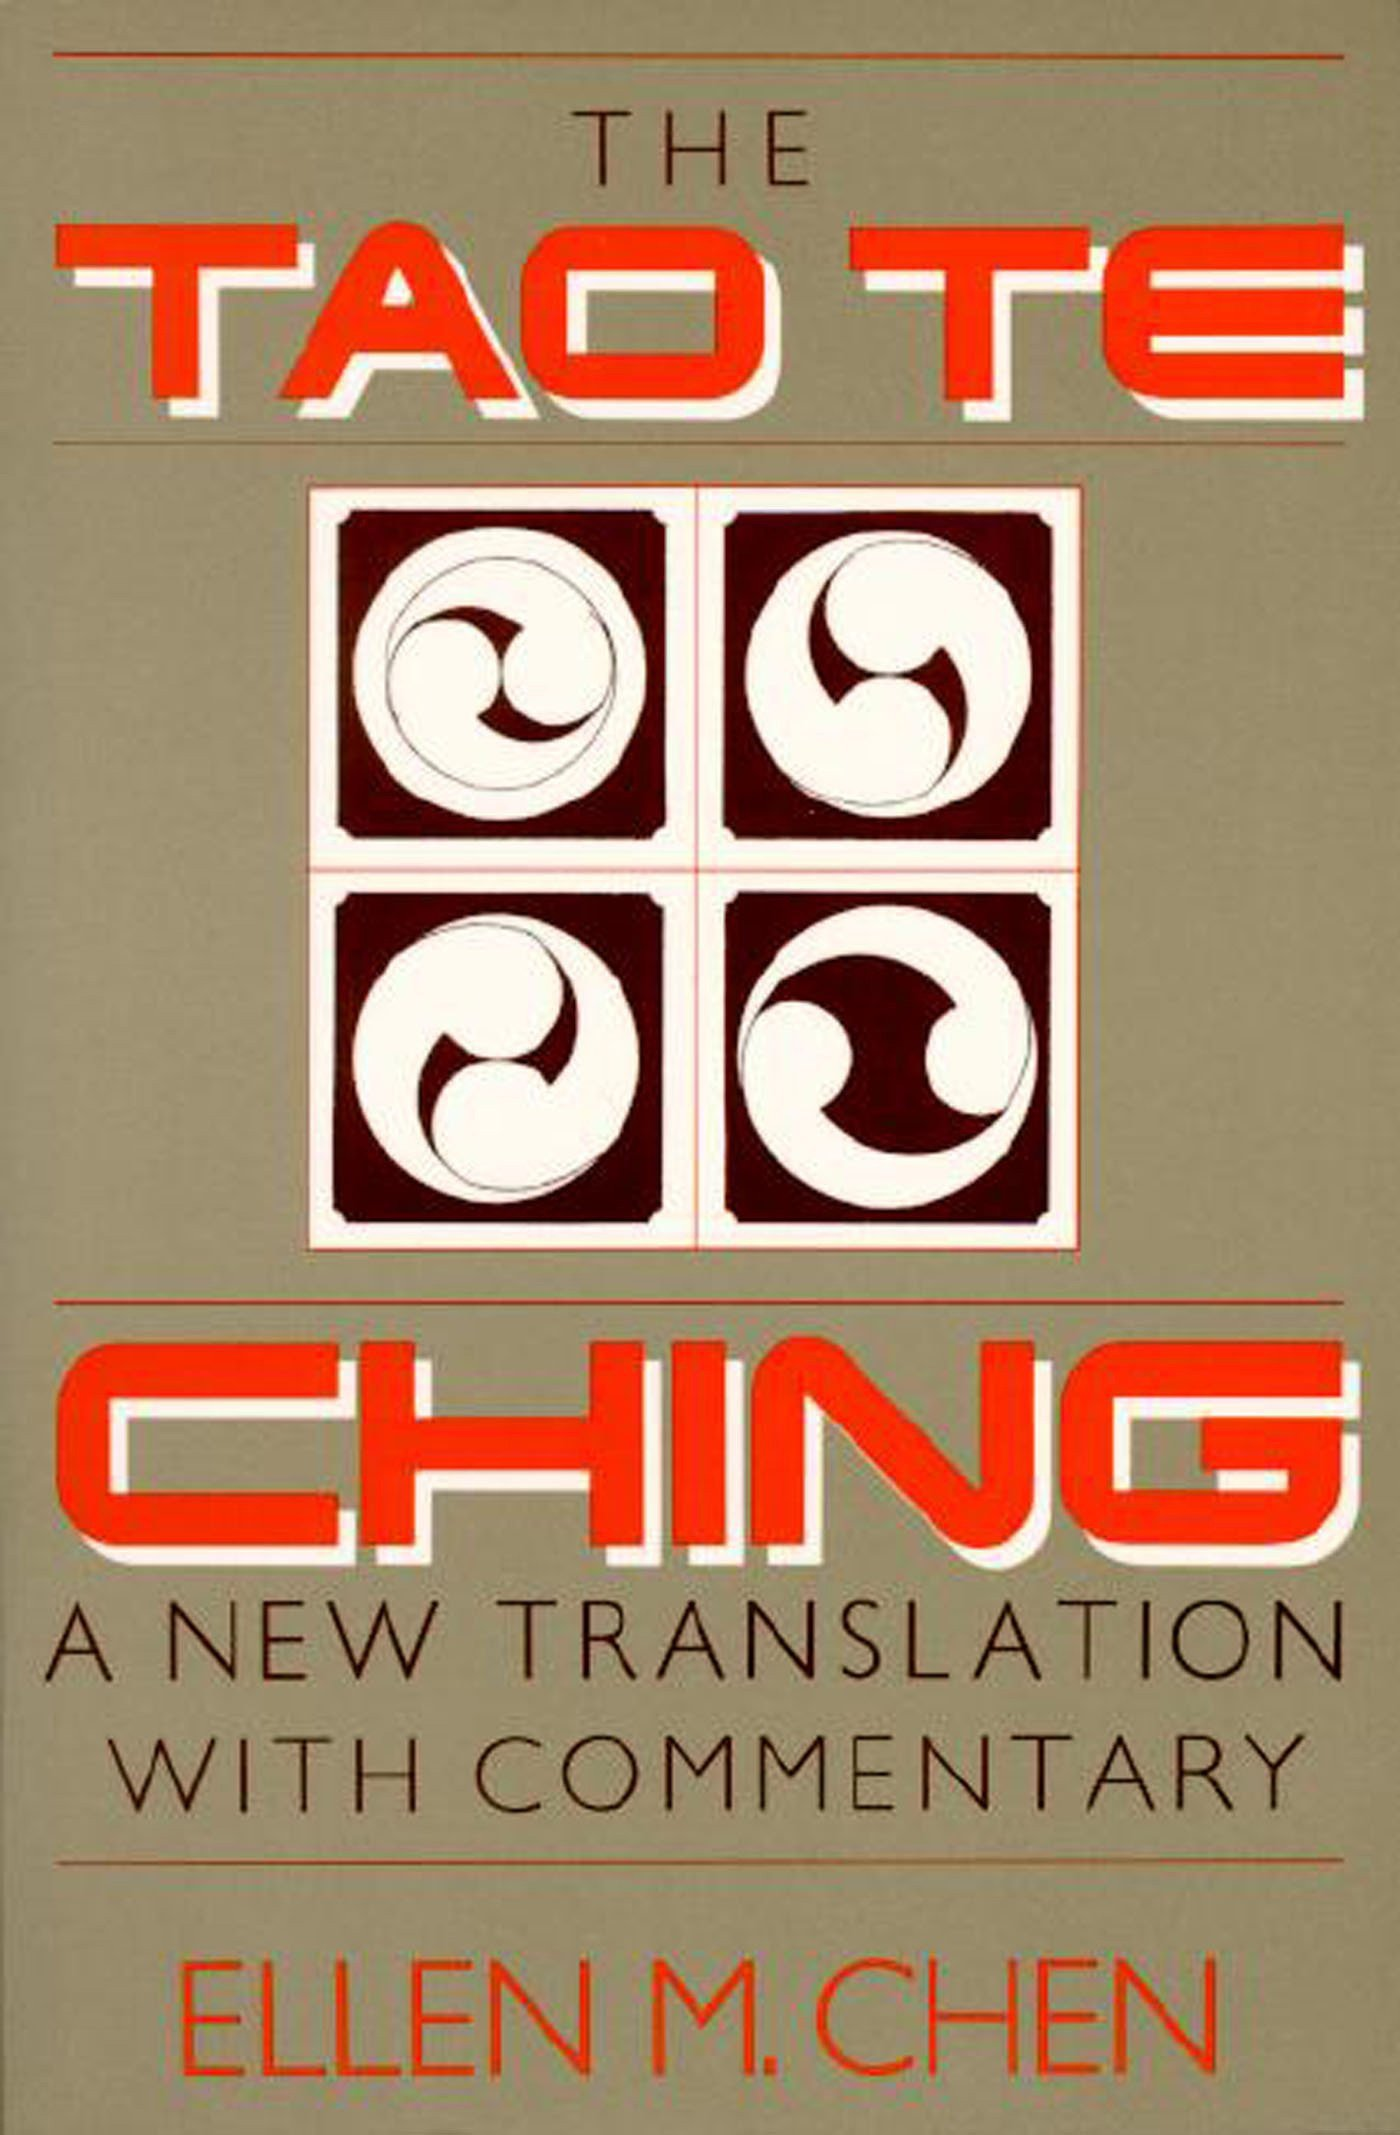 Tao te ching a new translation with commentary ellen chen tao te ching a new translation with commentary ellen chen 9781557782380 amazon books fandeluxe Image collections